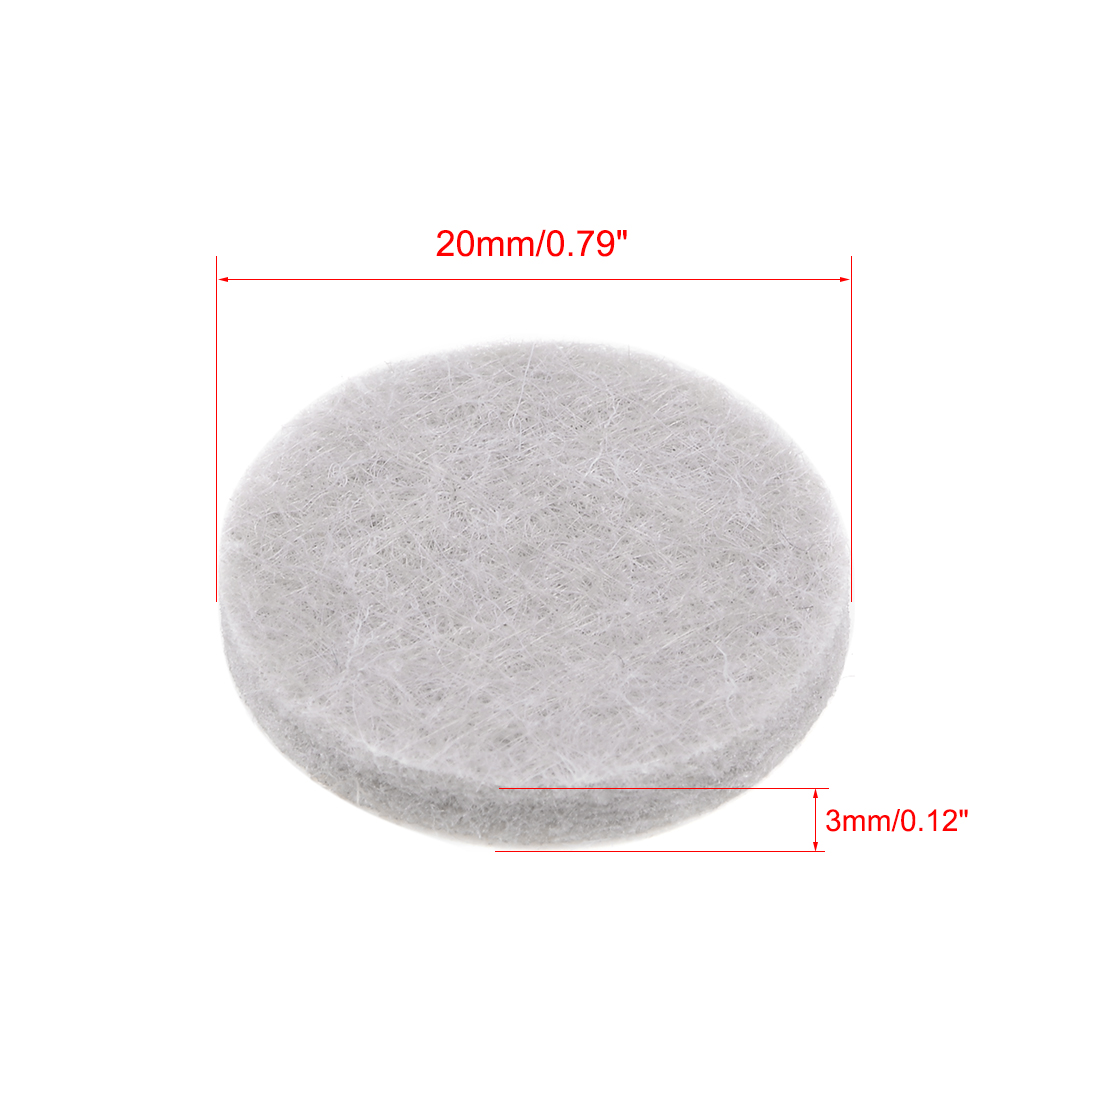 Furniture Pads Adhesive Felt Pads 20mmx3mm Floor Protector Round Beige 32Pcs - image 5 of 6